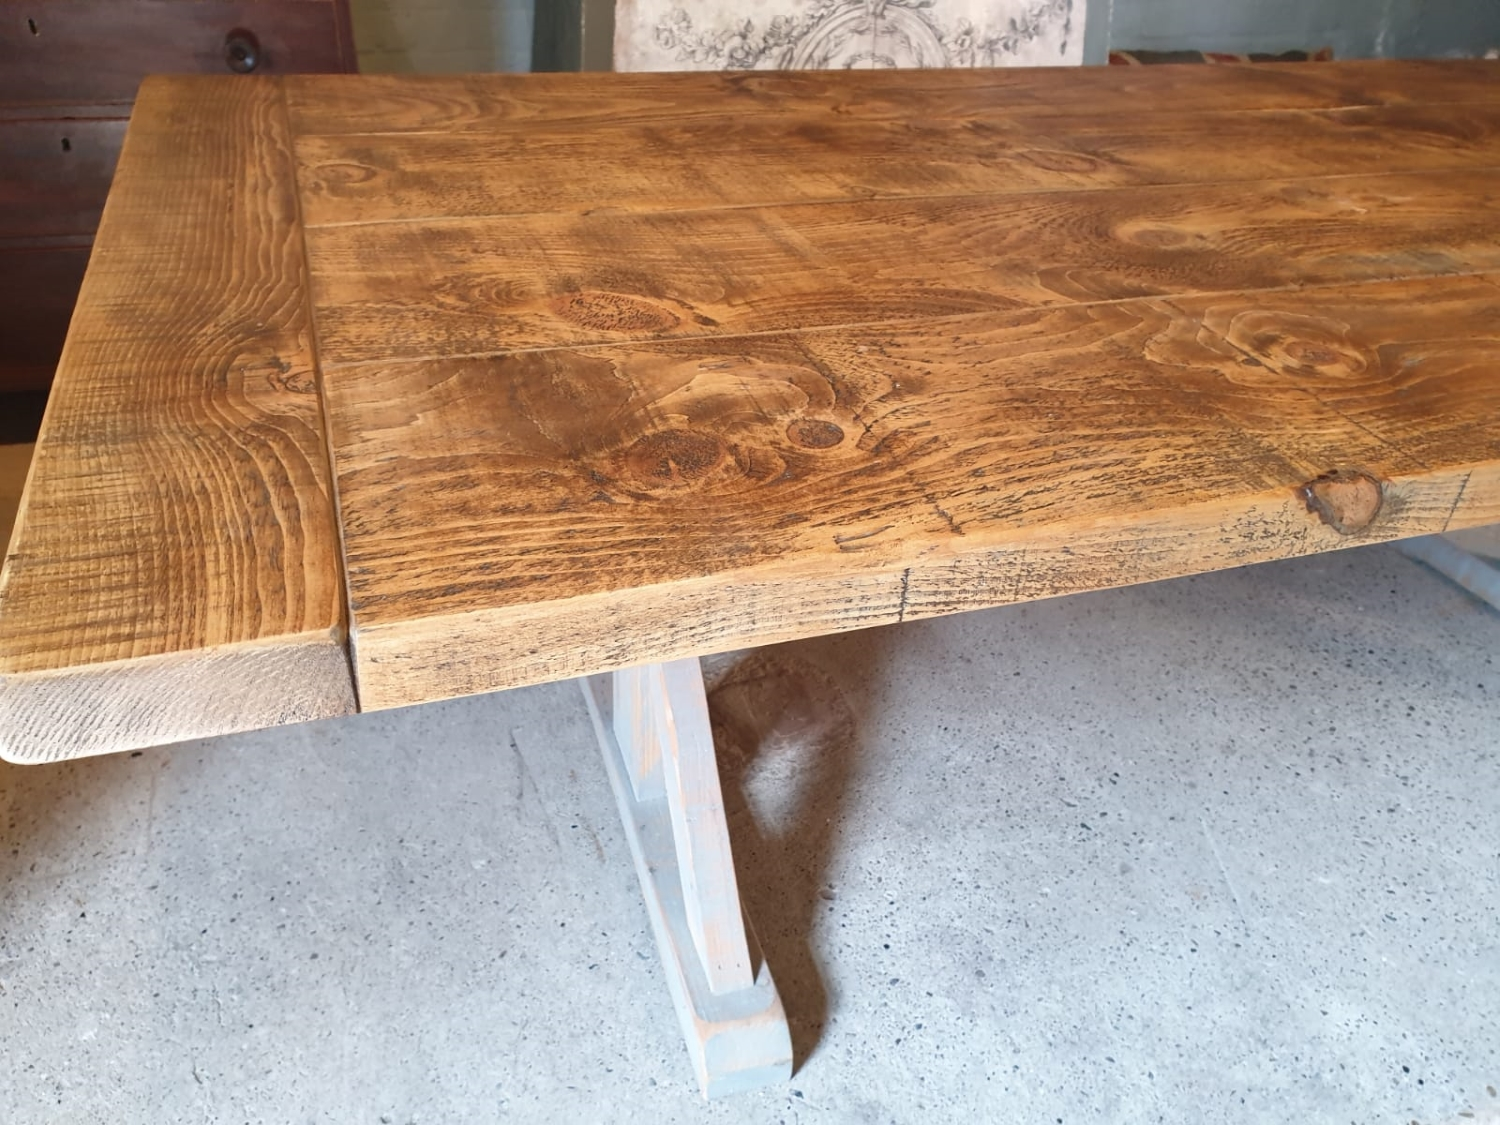 Union Base Reclaim Grey Distress Effect with Breadboard Ends & Rustic Finish